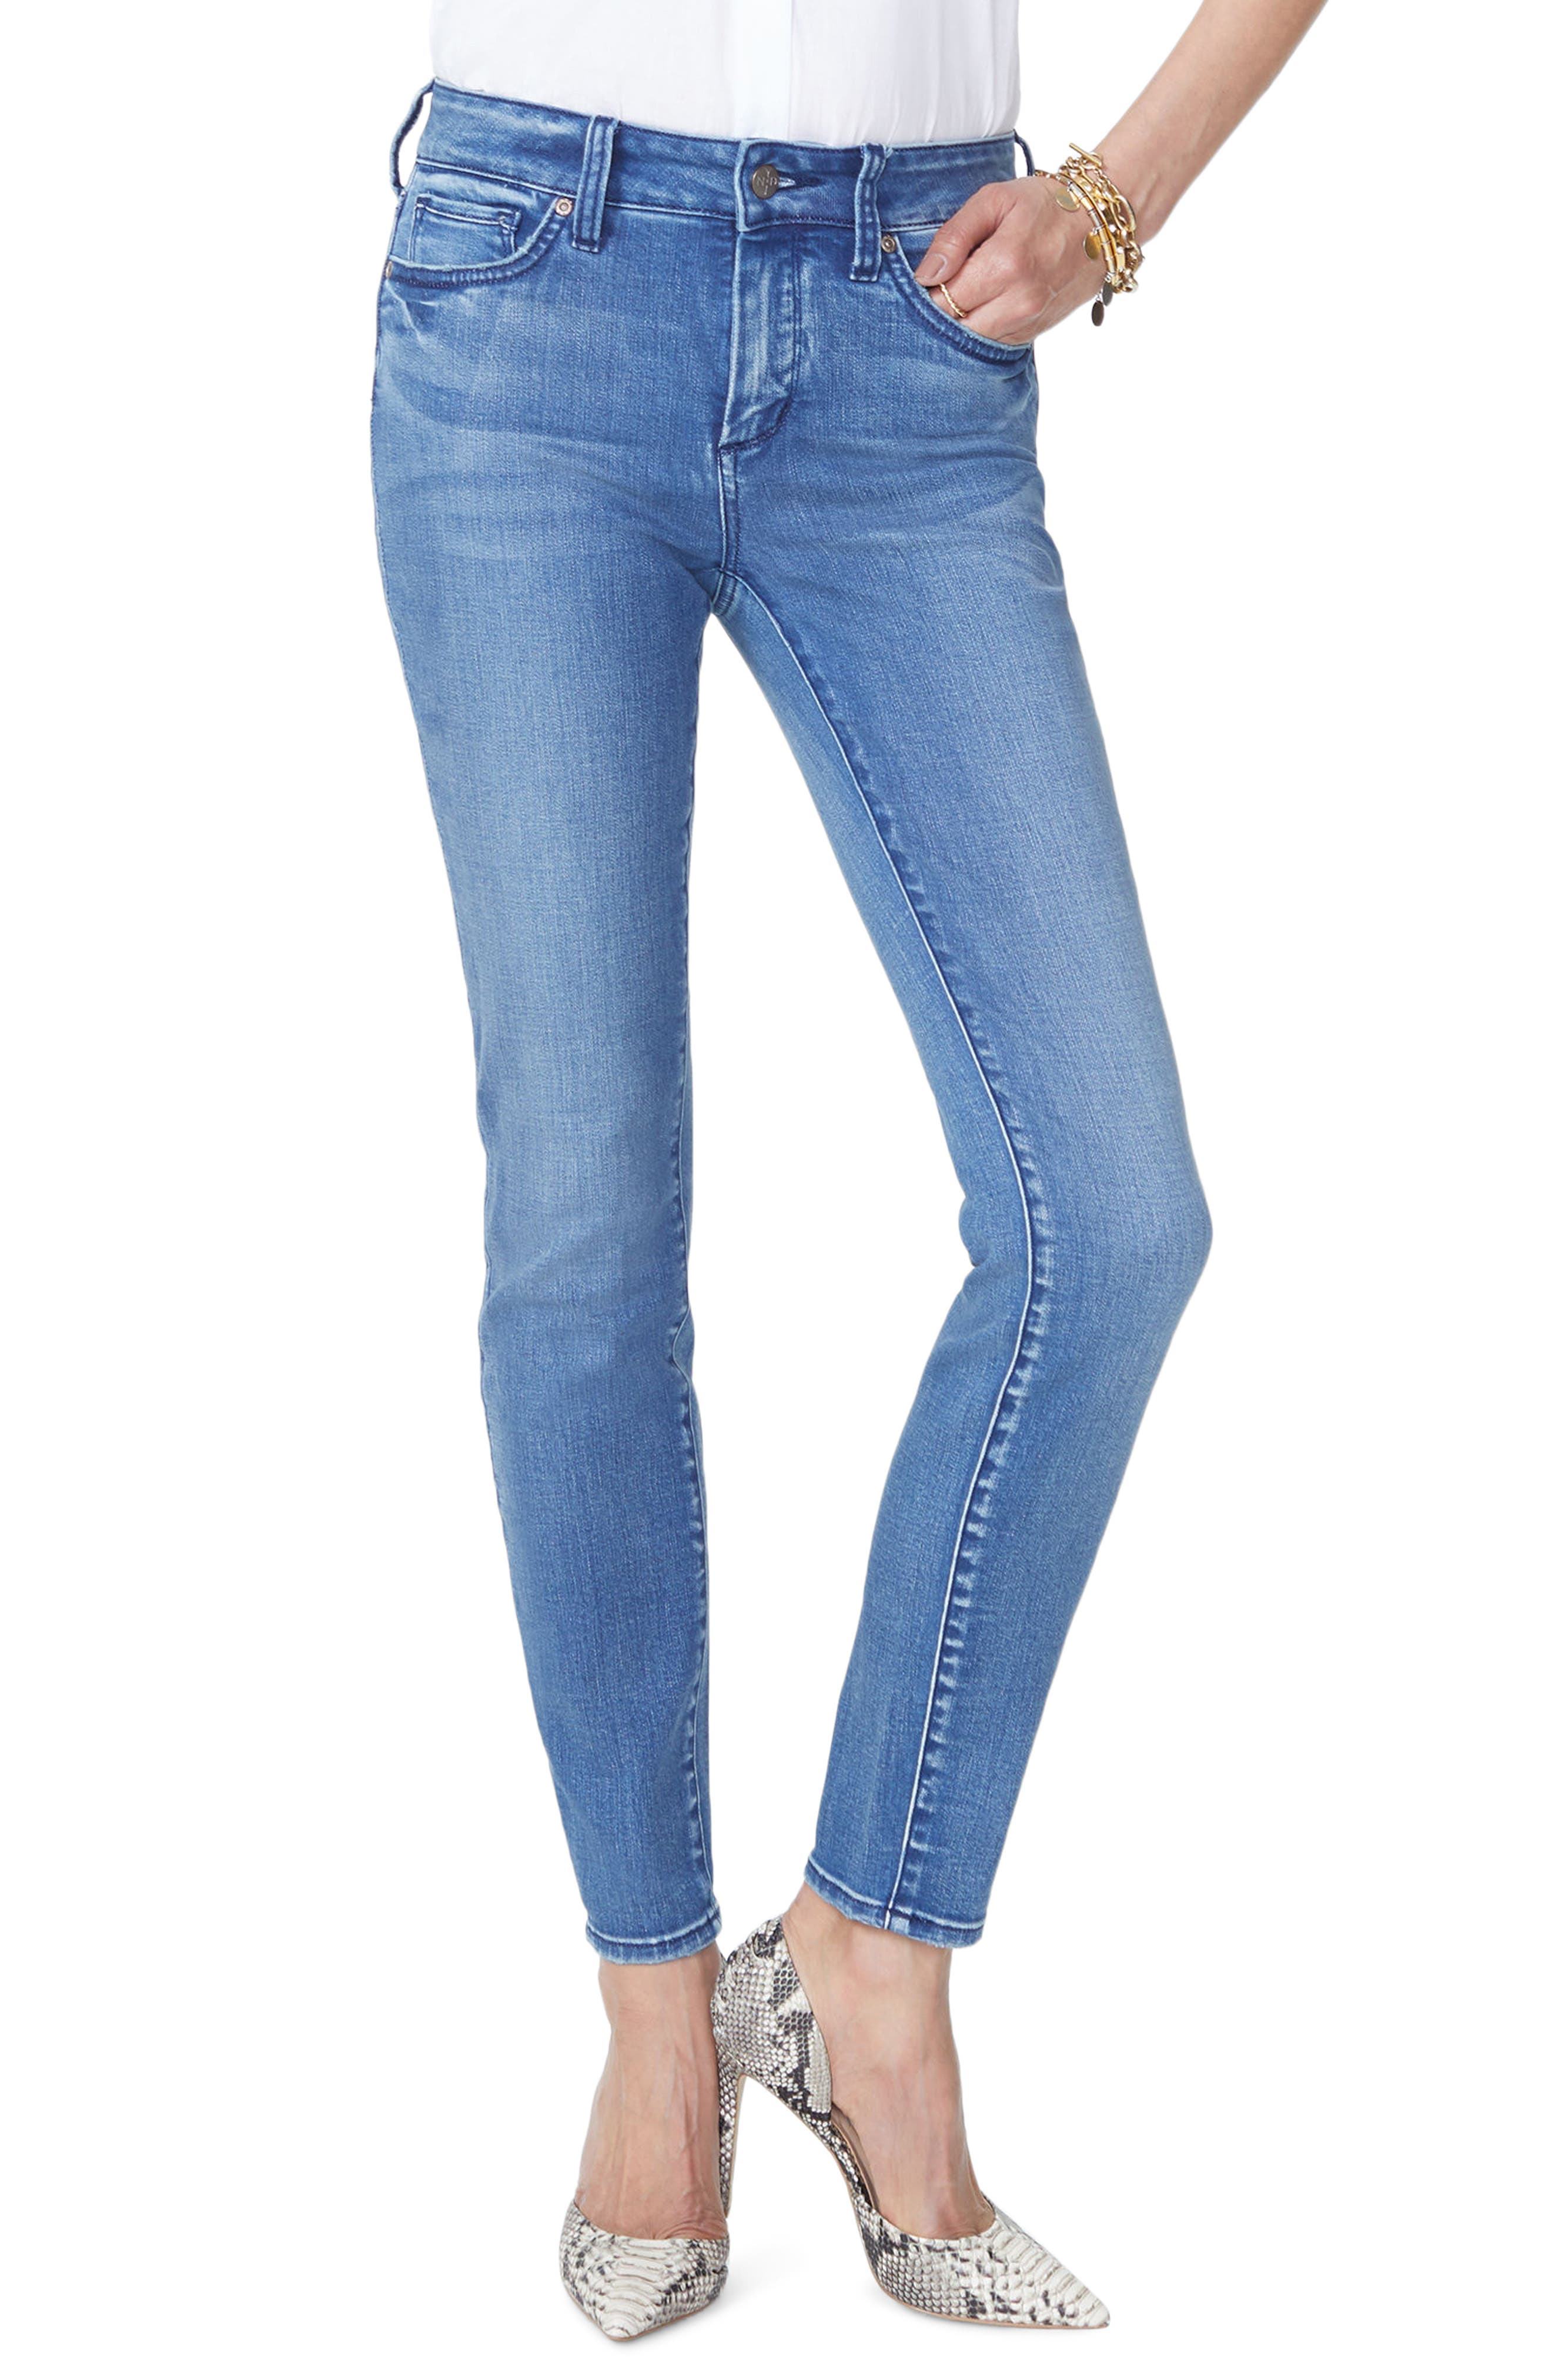 NYDJ, Ami High Waist Stretch Skinny Jeans, Main thumbnail 1, color, 410